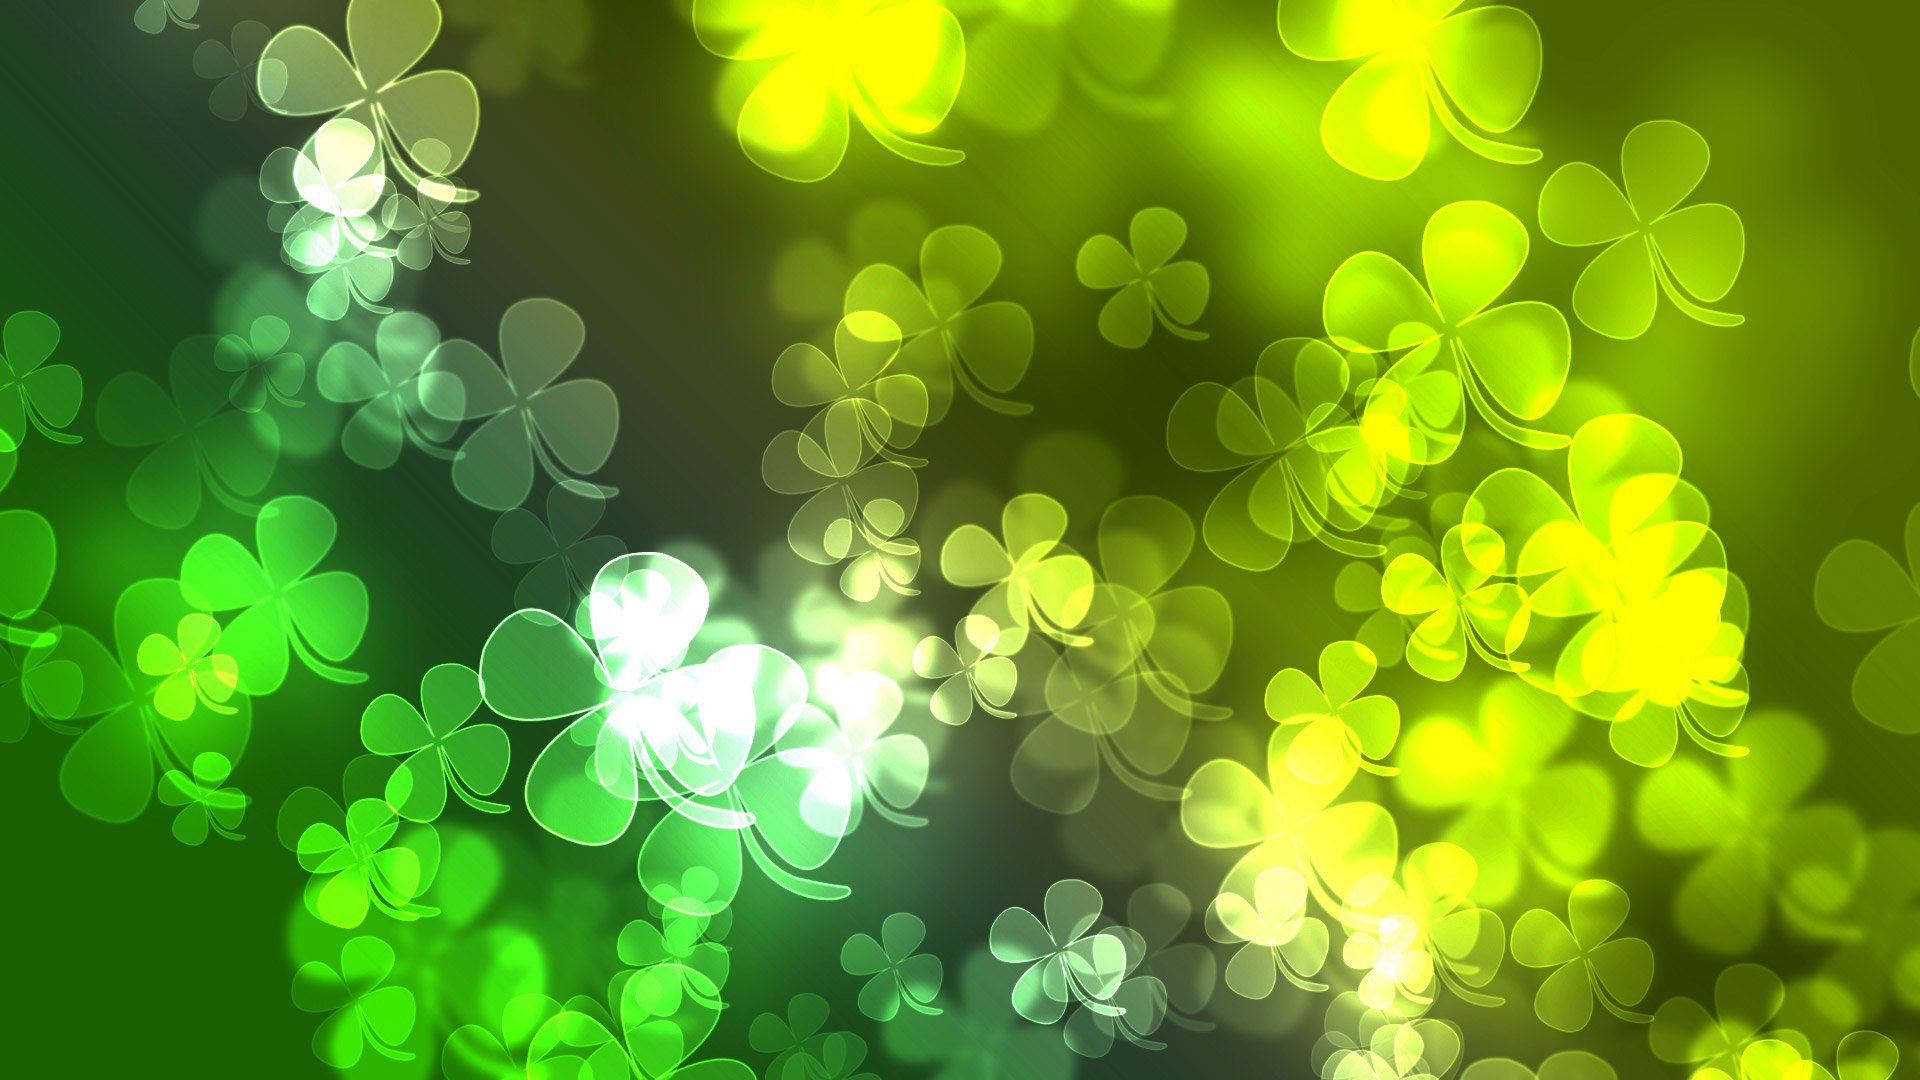 st_patricks_day_wallpaper_07